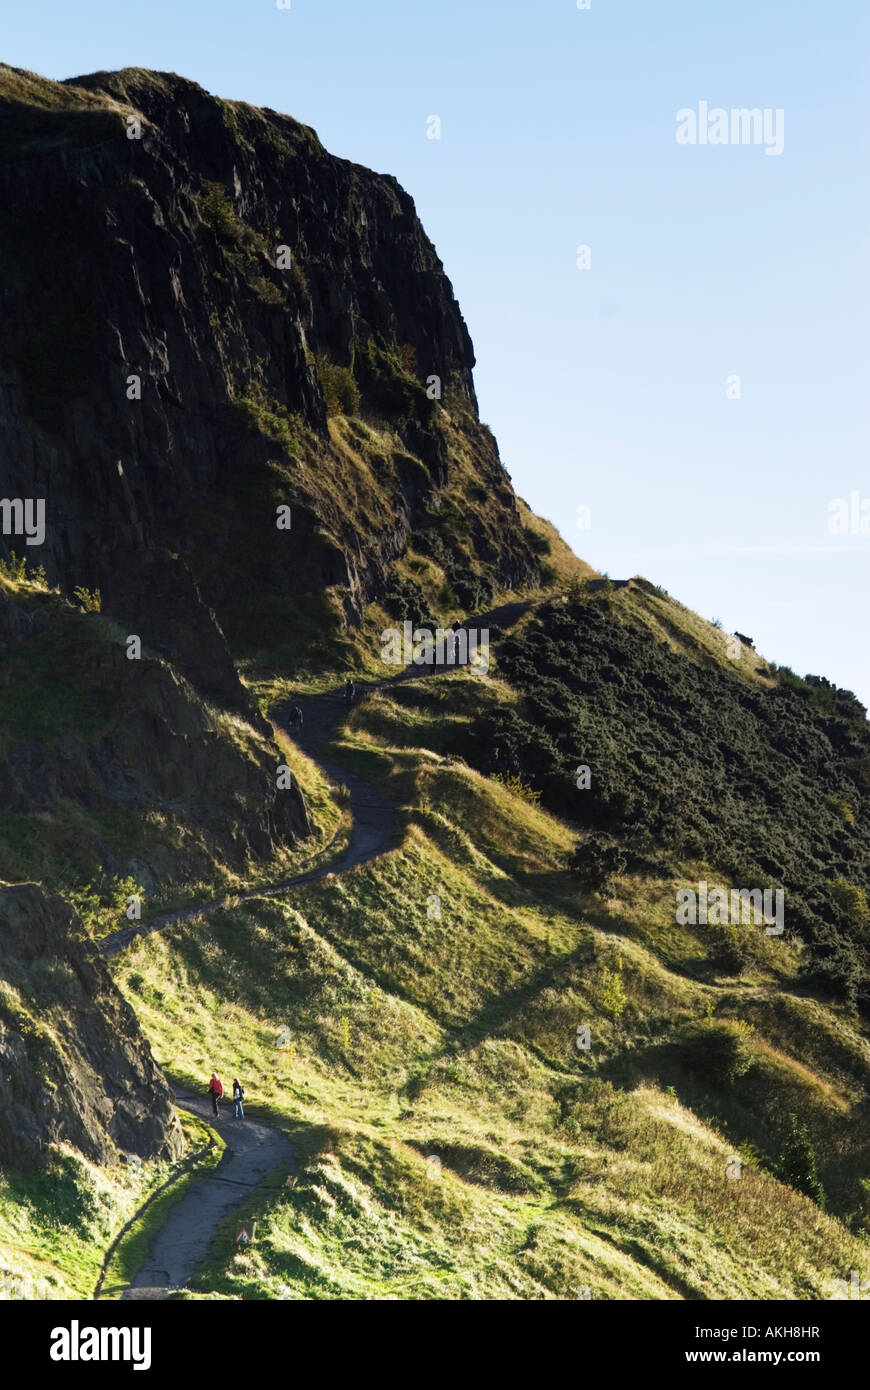 The north end of the Radical Road which runs under Salisbury Crags in Holyrood Park Edinburgh Scotland UK - Stock Image